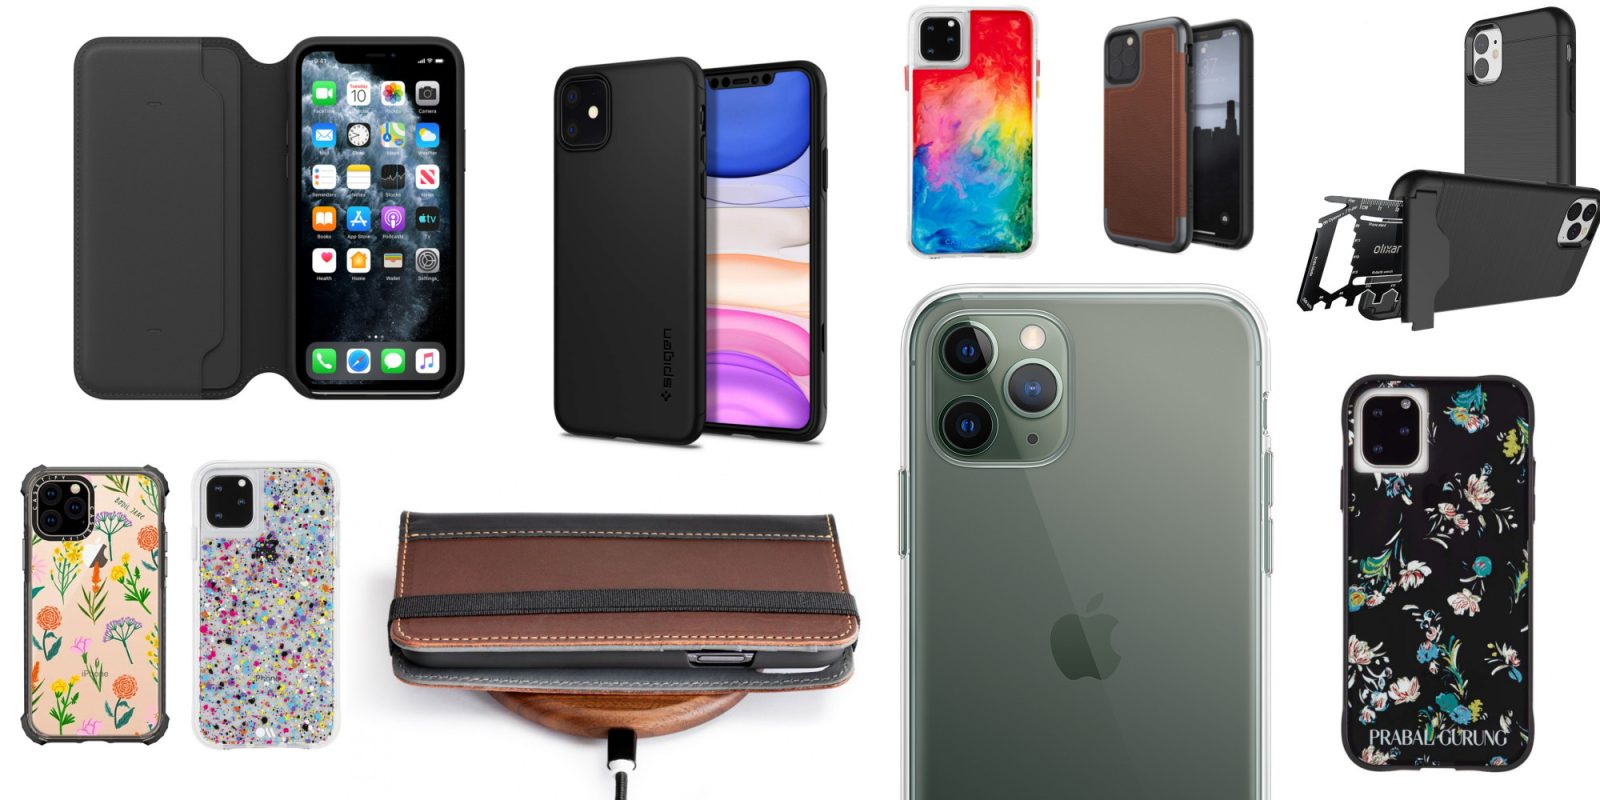 Best Iphone 11 Pro And Pro Max Cases Now Available 9to5mac